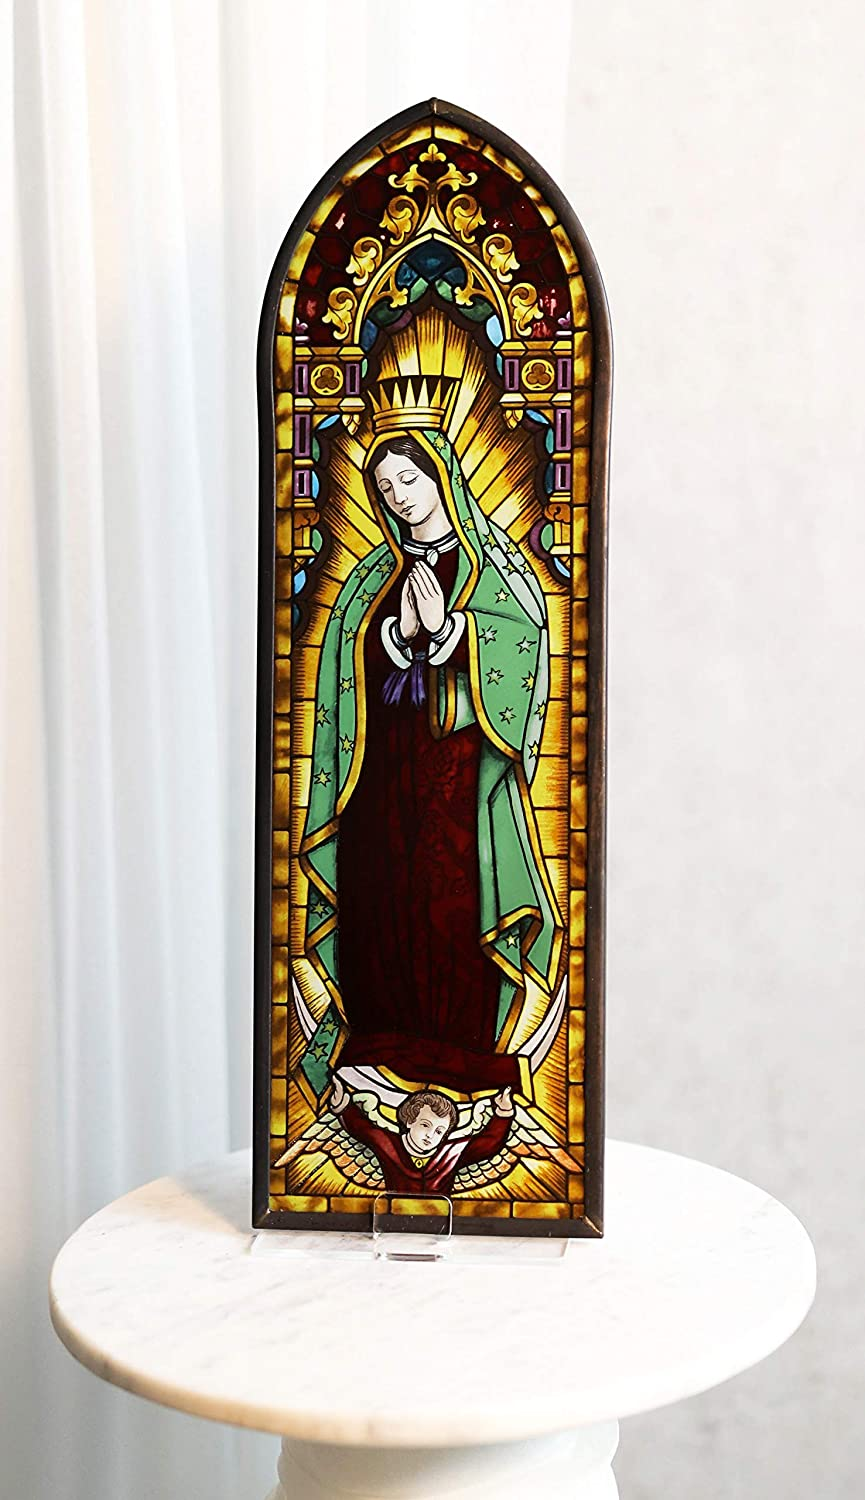 Ebros Gift Frank Lloyd Wright Devotion Masterpiece Our Lady of Guadalupe Virgin Mary Stained Glass Art Wall Decor or Flat Surface Desktop Plaque Display Catholic Home Decorative Inspirational Gift